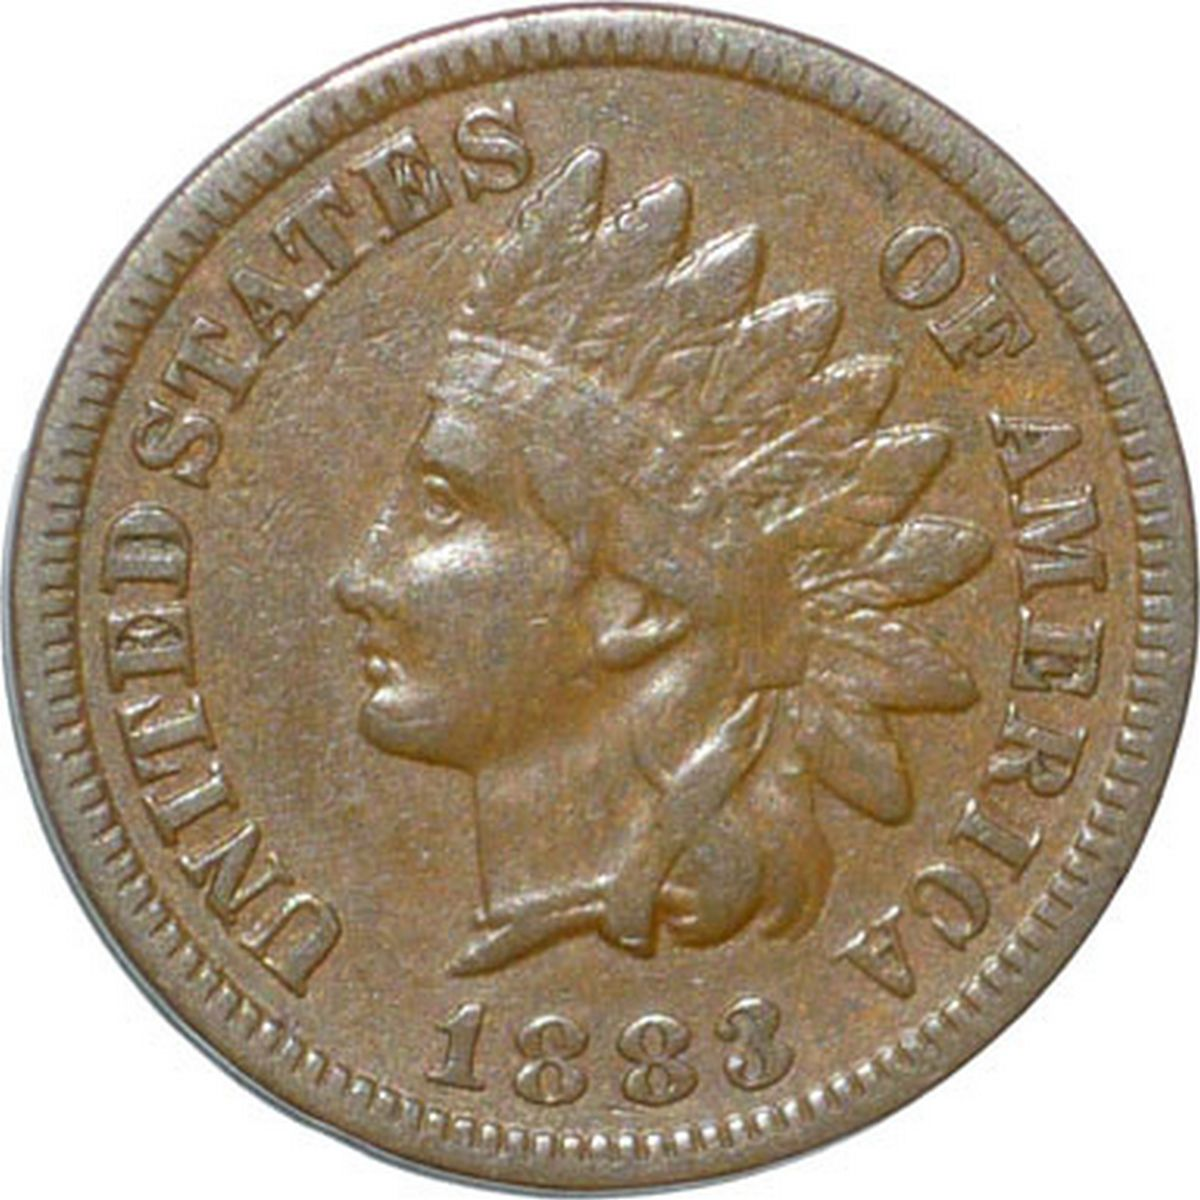 1883 MPD-009 - Indian Head Penny - Photo by David Poliquin